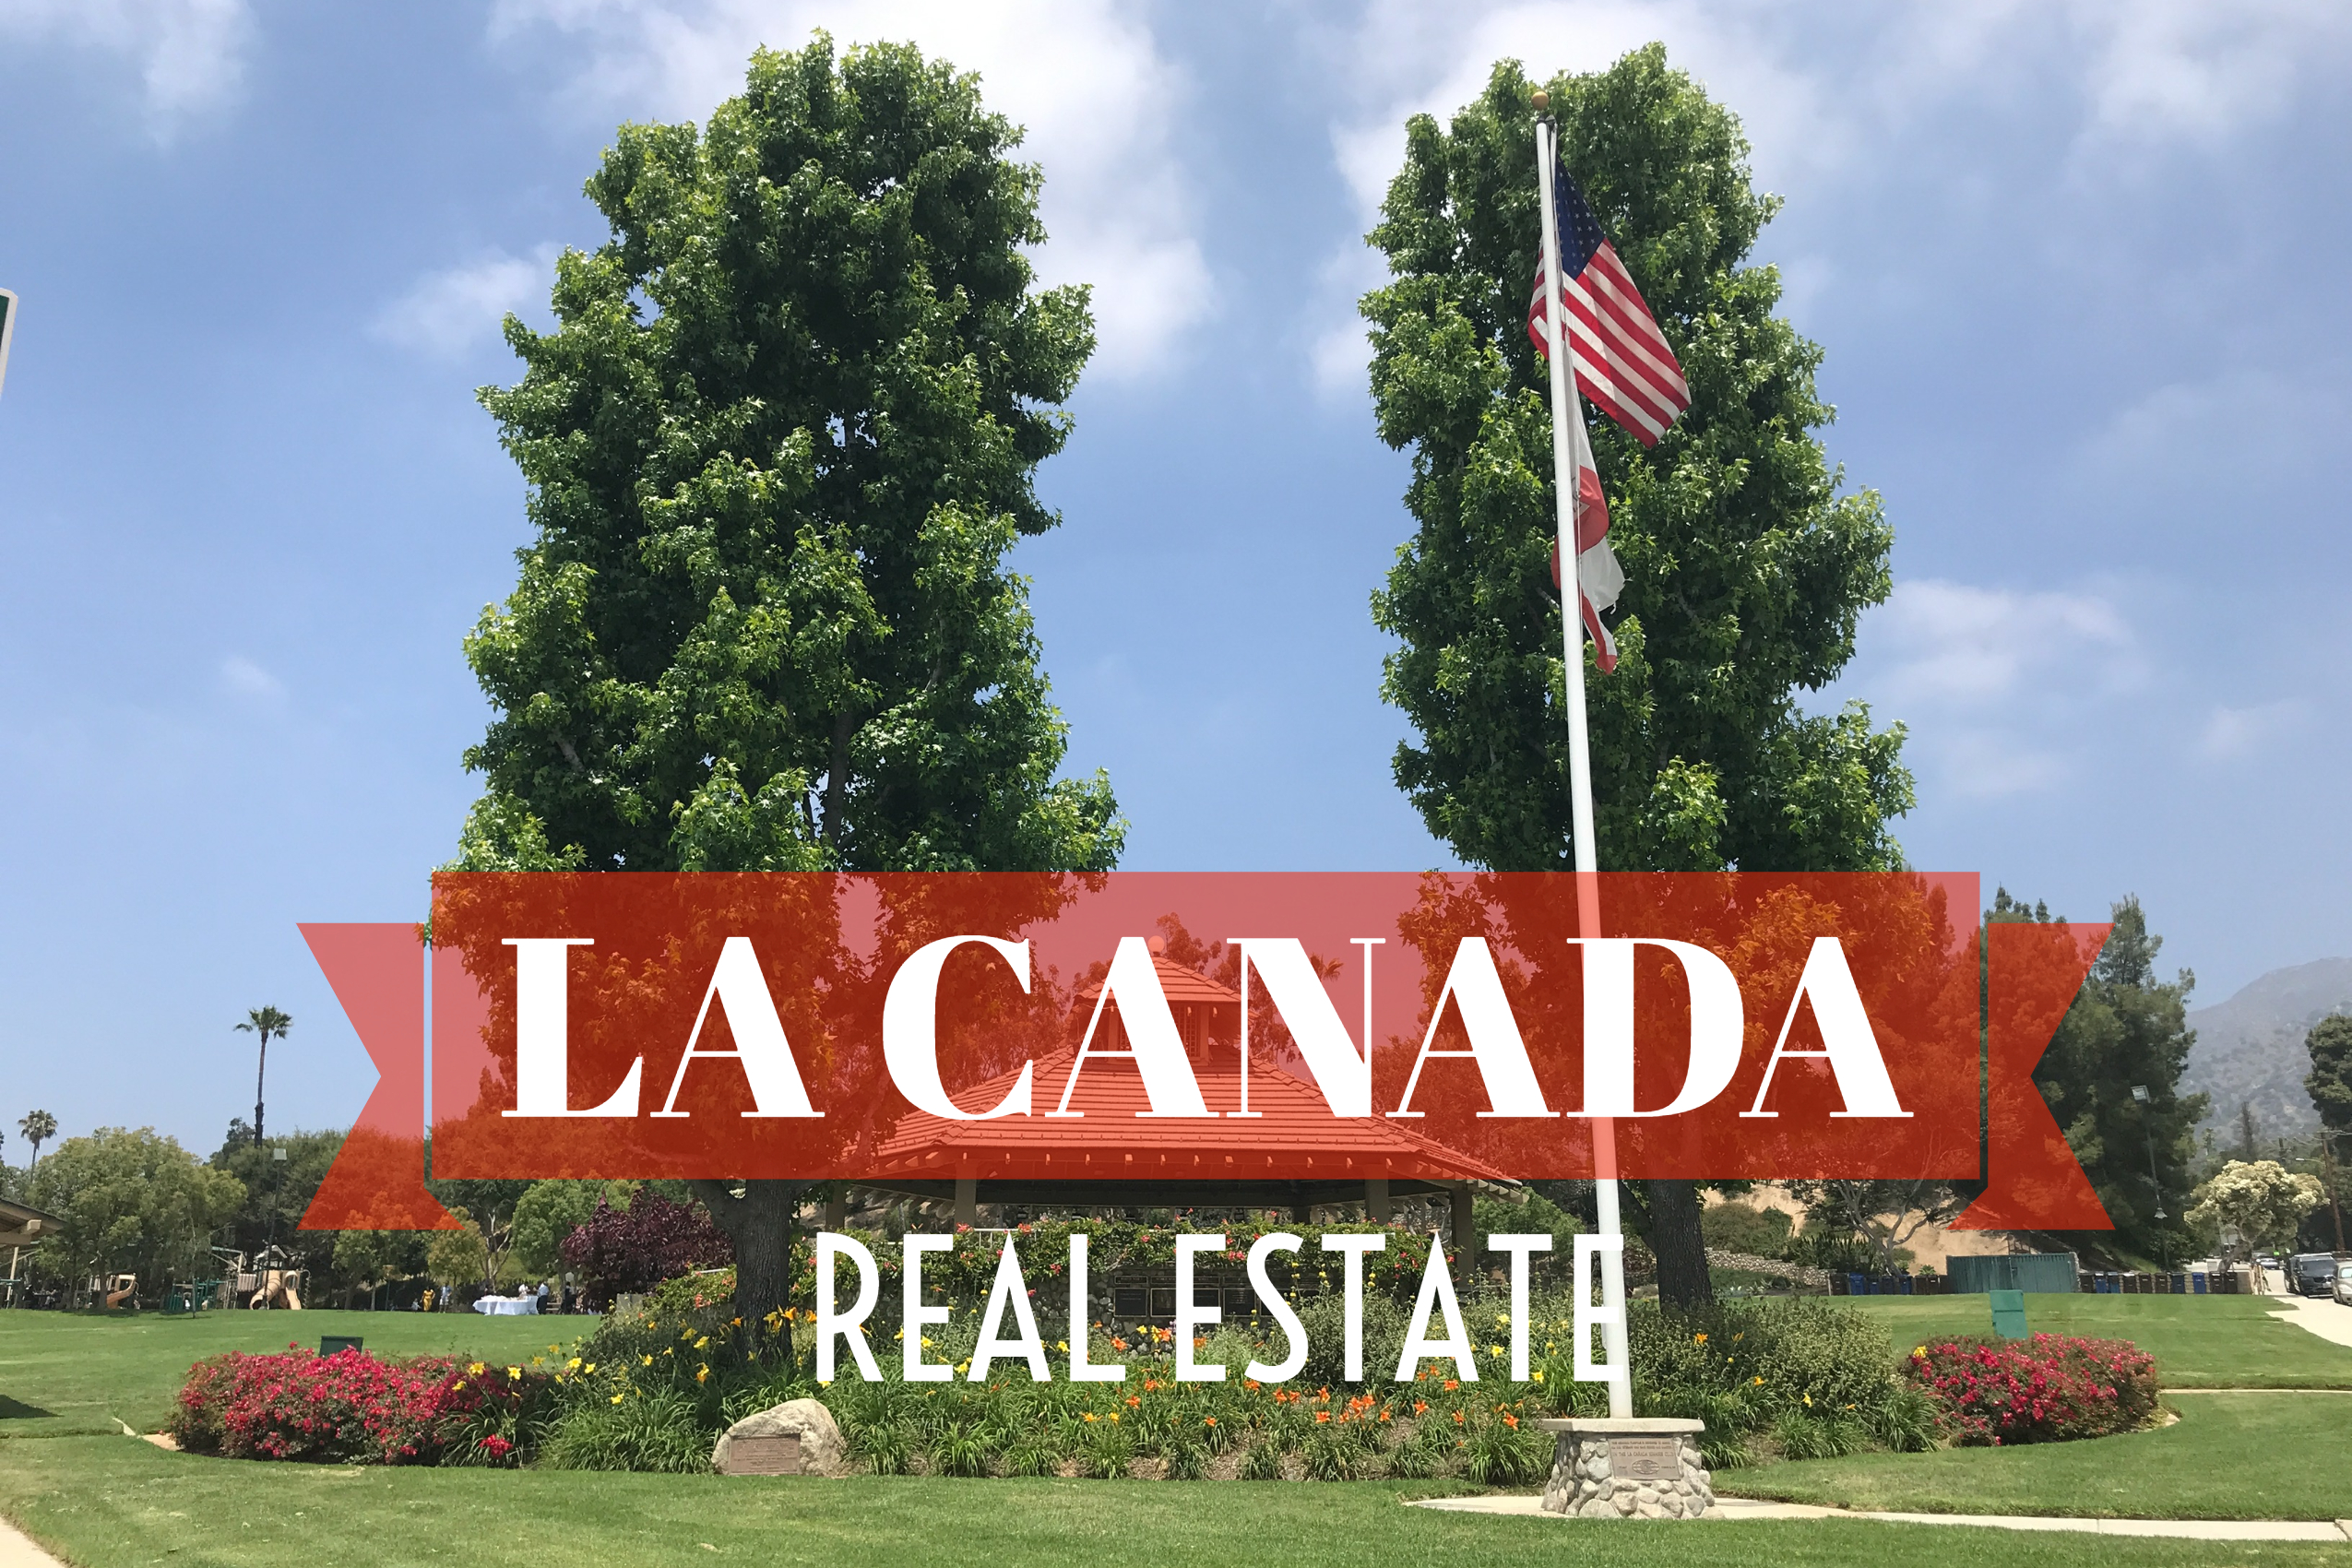 La Canada Real Estate Agent La Canada Realtor Best Real Estate Agent in La Canada Celebrity Real Estate Agent Pro Athlete Relocation Million Dollar Listing TalkToPaul Paul Argueta 3